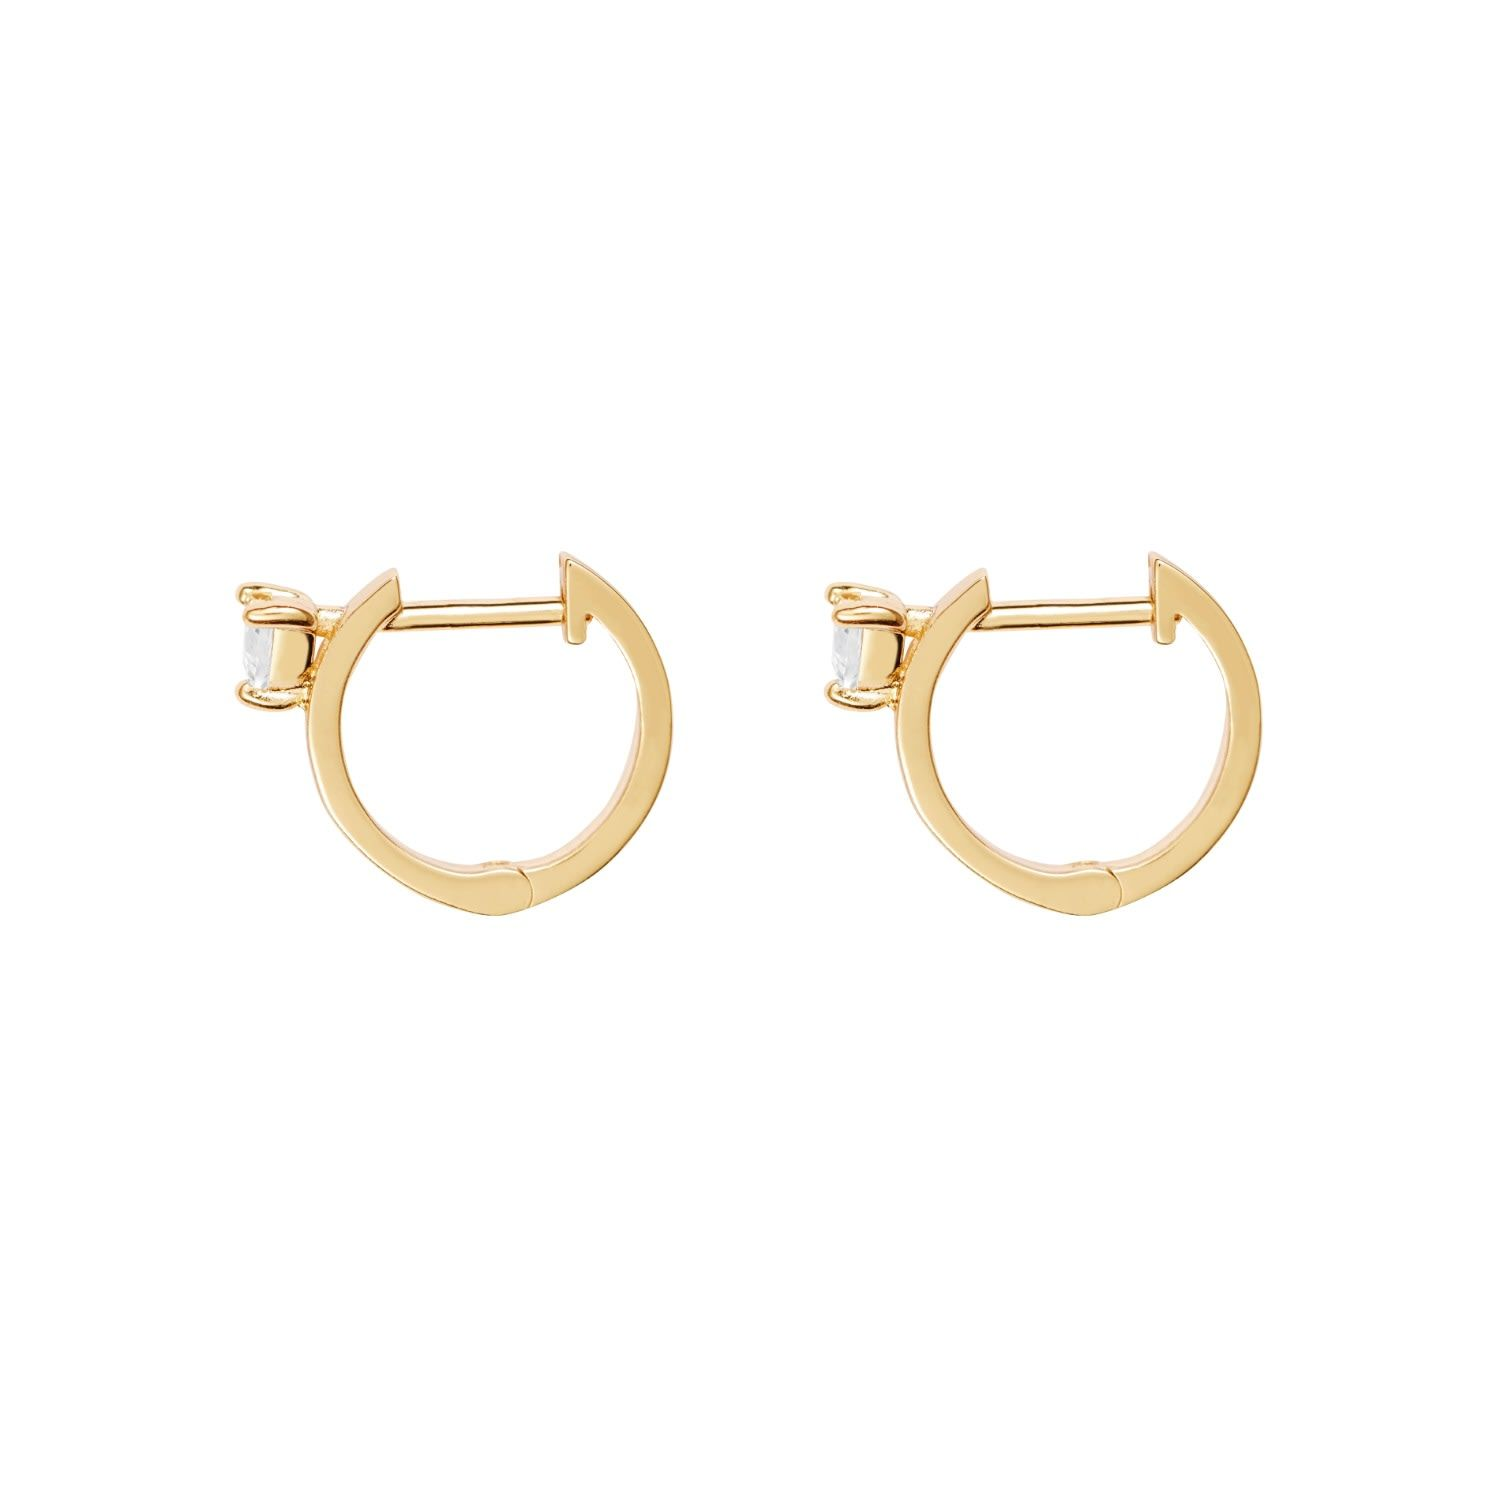 Our fan favorite huggie earrings get a luxe update with the Heart Space Earrings. Shine a light on these gold gilt huggie earrings studded with a single cubic zirconia crystal on each side. - Brass - Nickel free - 14K gold plating - Cubic zirconia stones - Hinge closure earrings - 925 sterling silver posts Every jewel deserves a little loving and care! Always avoid contact with chemicals and moisture' such as hair spray, perfume' lotions' household cleansers, pool and sea water. You can help avo